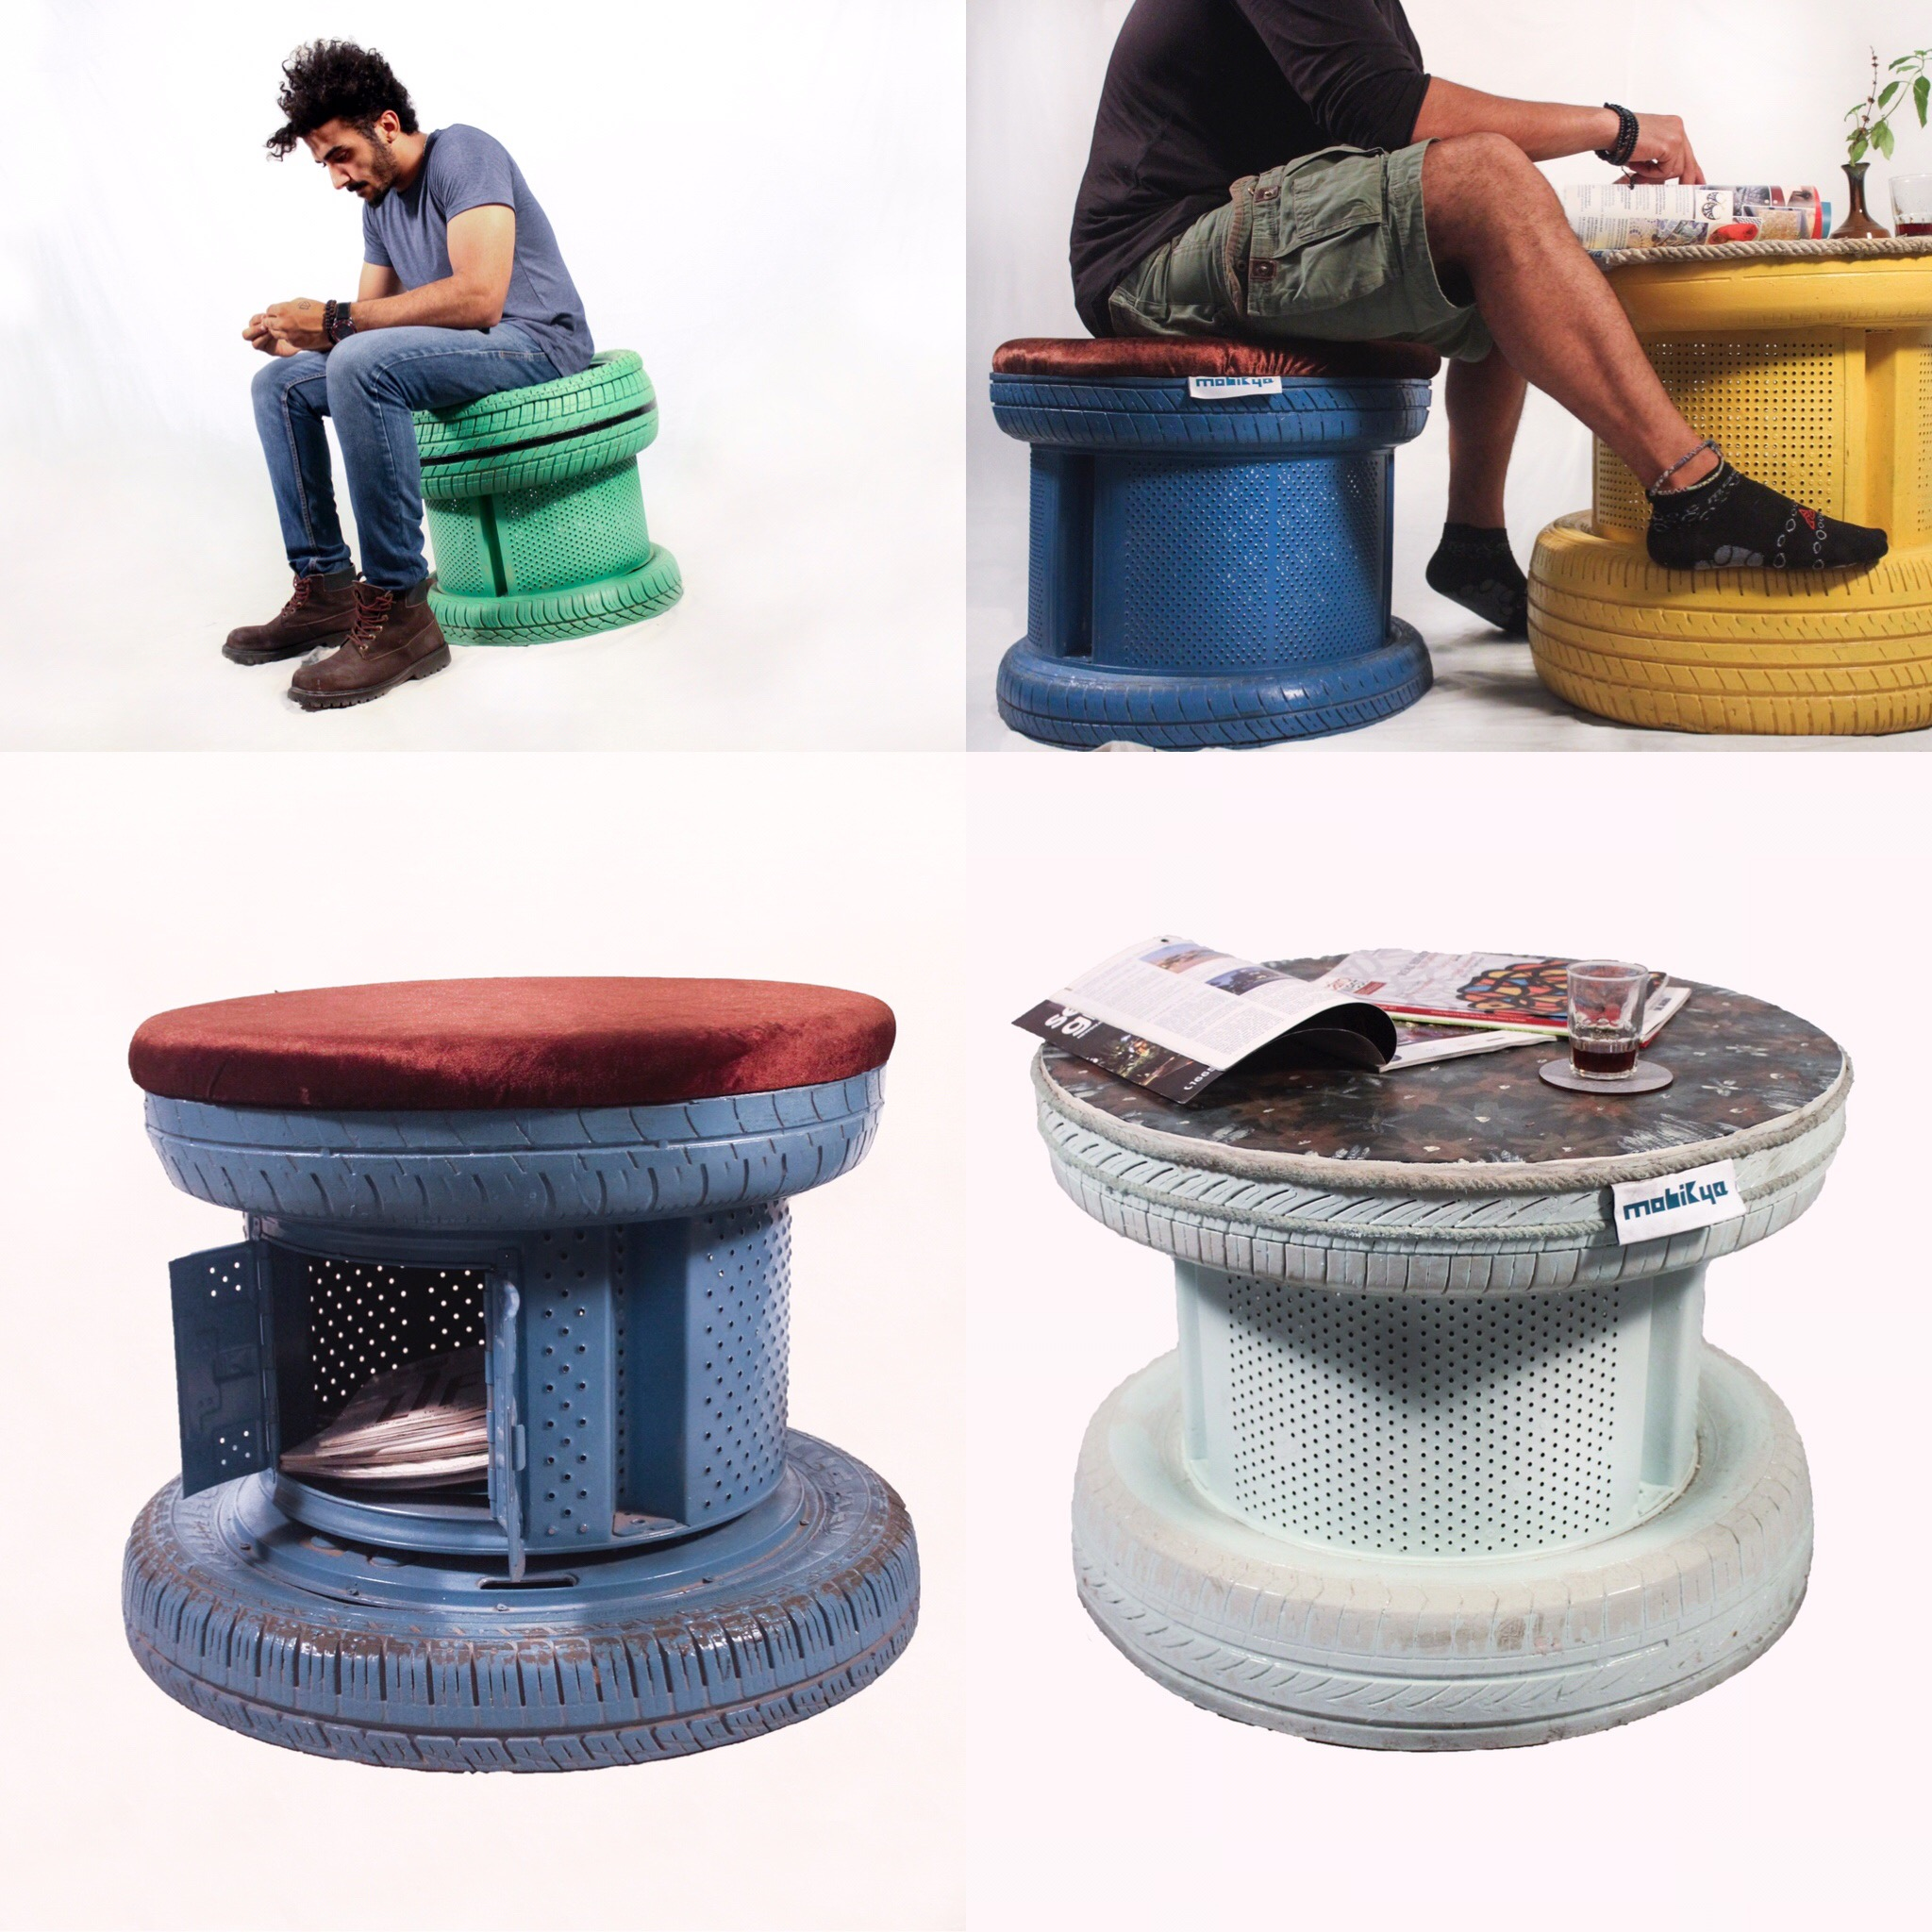 Upcycled Green Furniture Design Tires Wdcd Climate Challenge